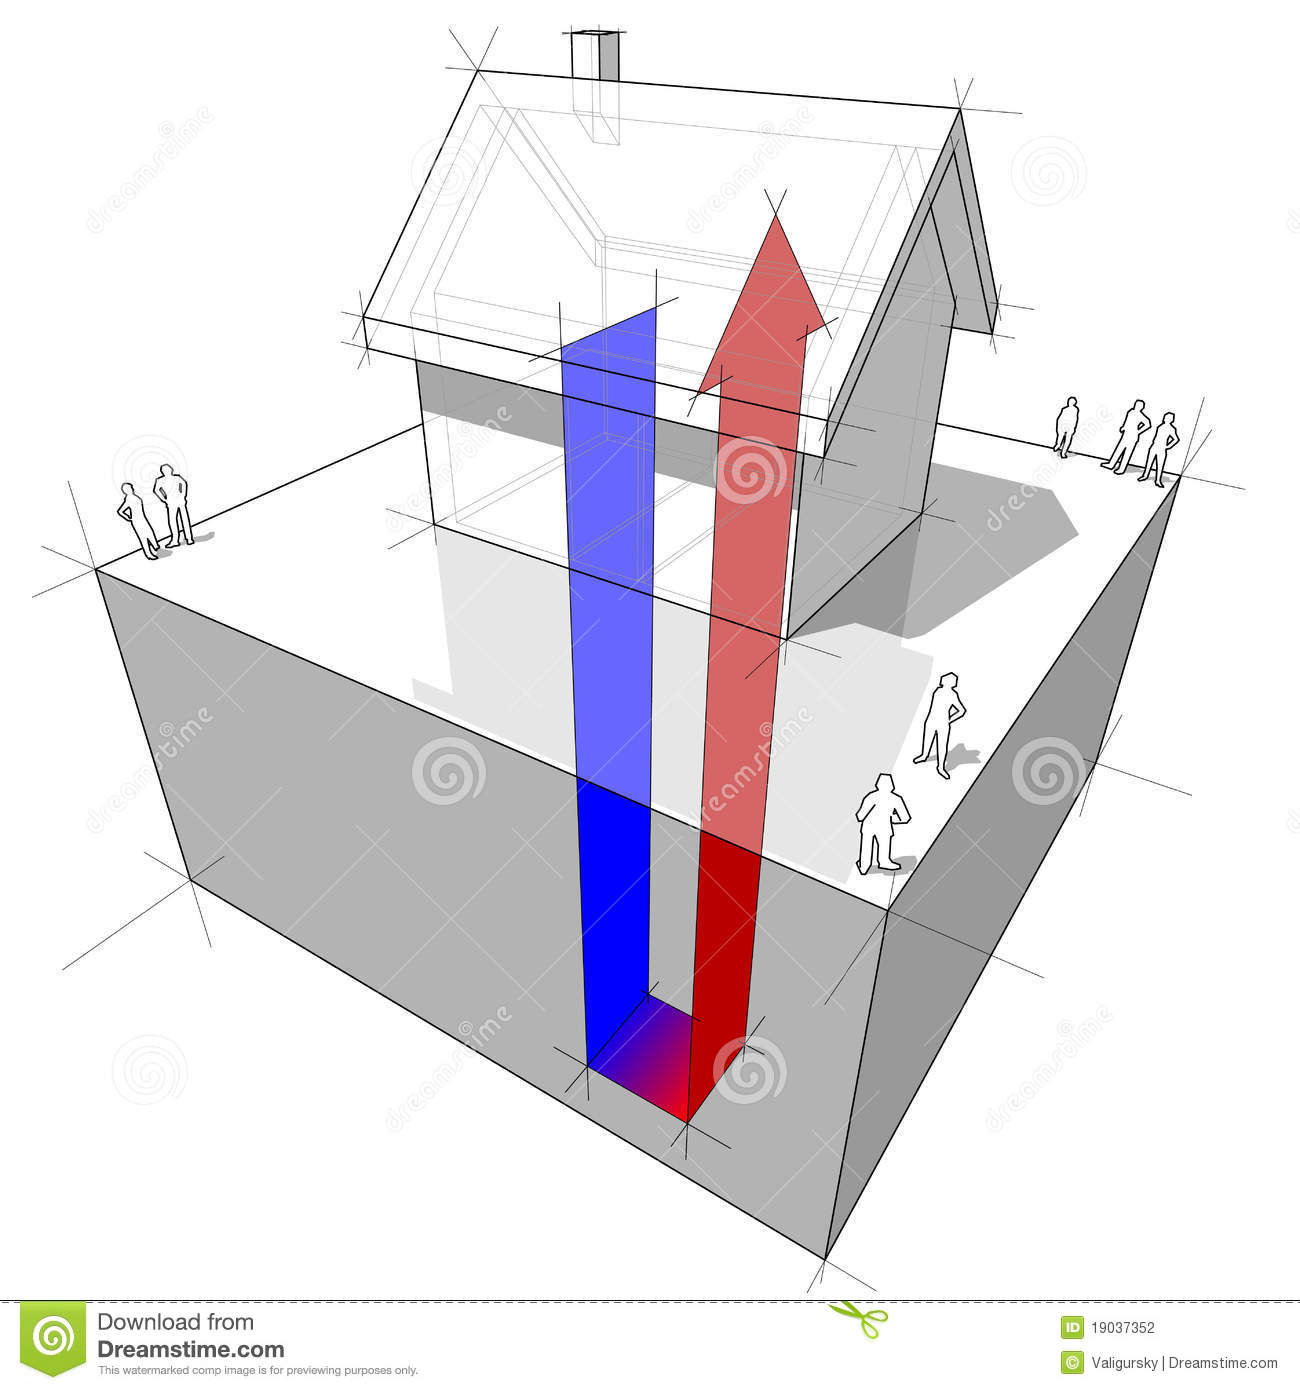 Heat Pump Diagram Stock Vector  Illustration Of Outline